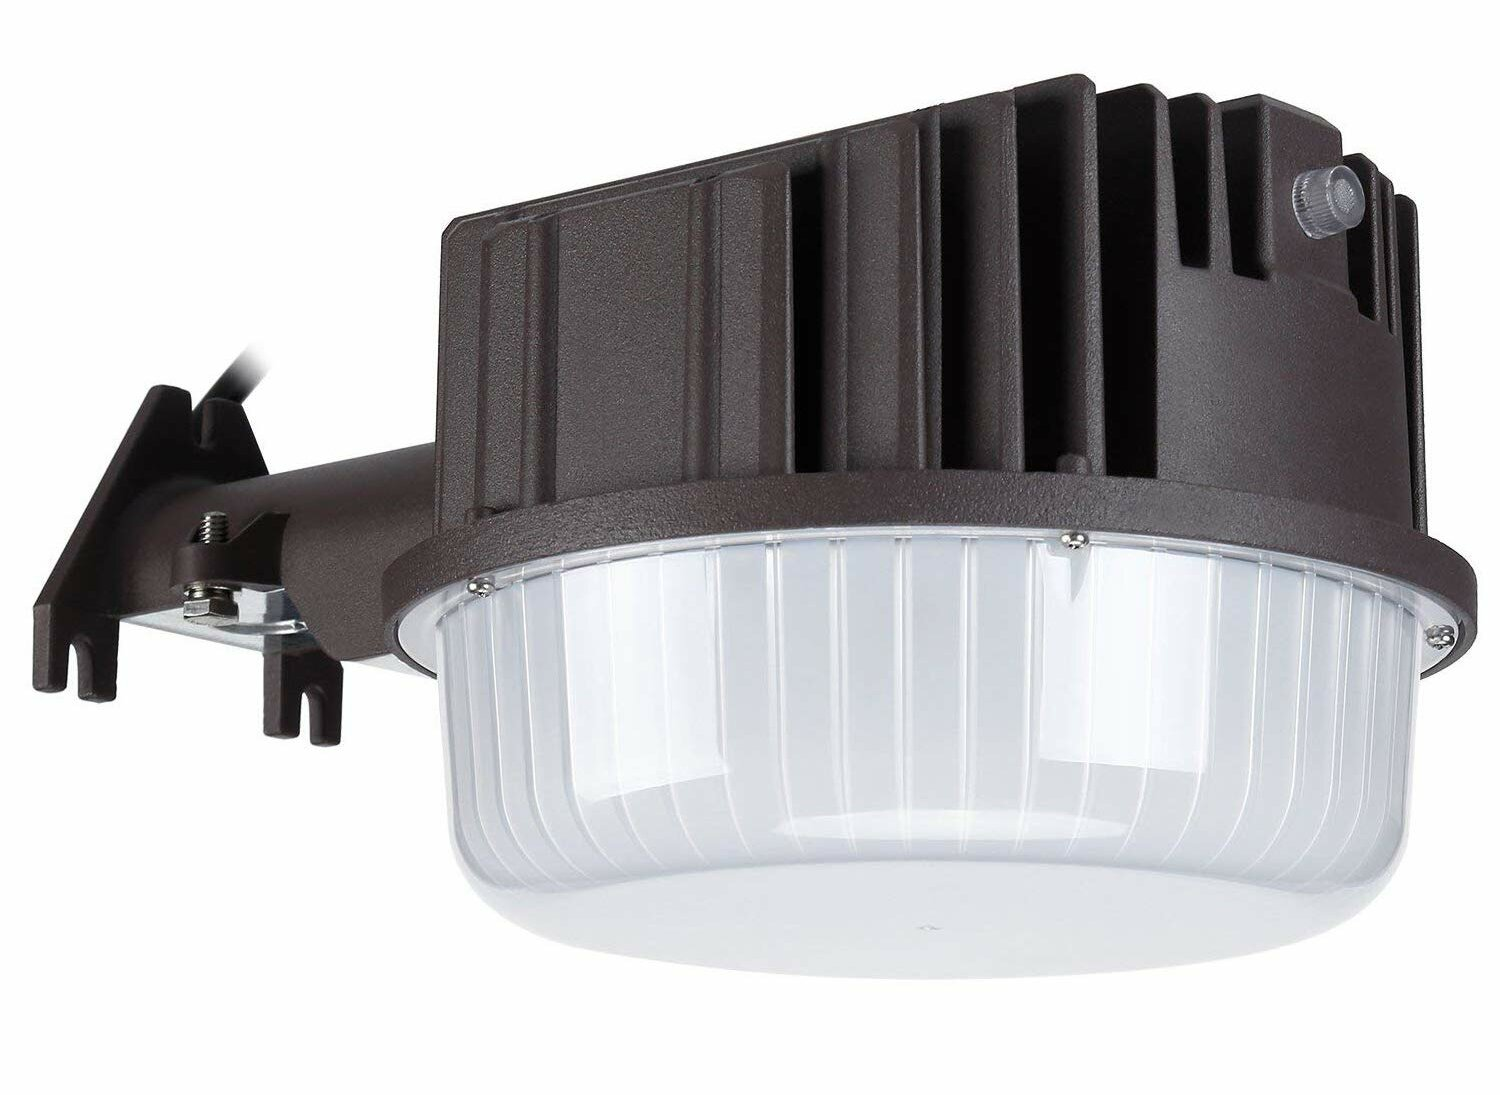 Leonlite 80w Led Dusk To Dawn Outdoor